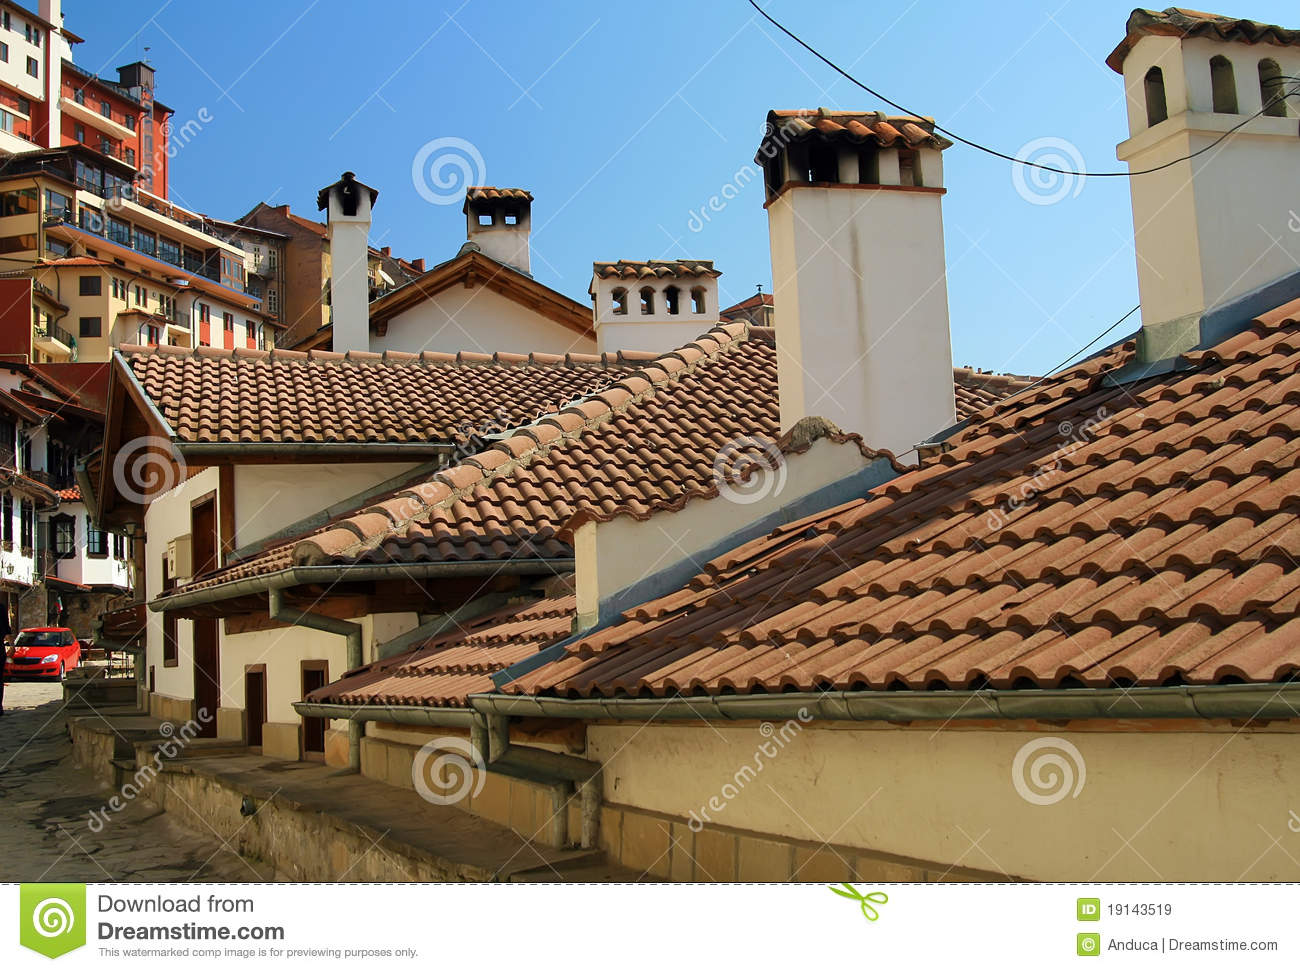 Old houses and roofs with ceramic tiles royalty free stock images image 19143519 - Houses with ceramic tile roofing ...